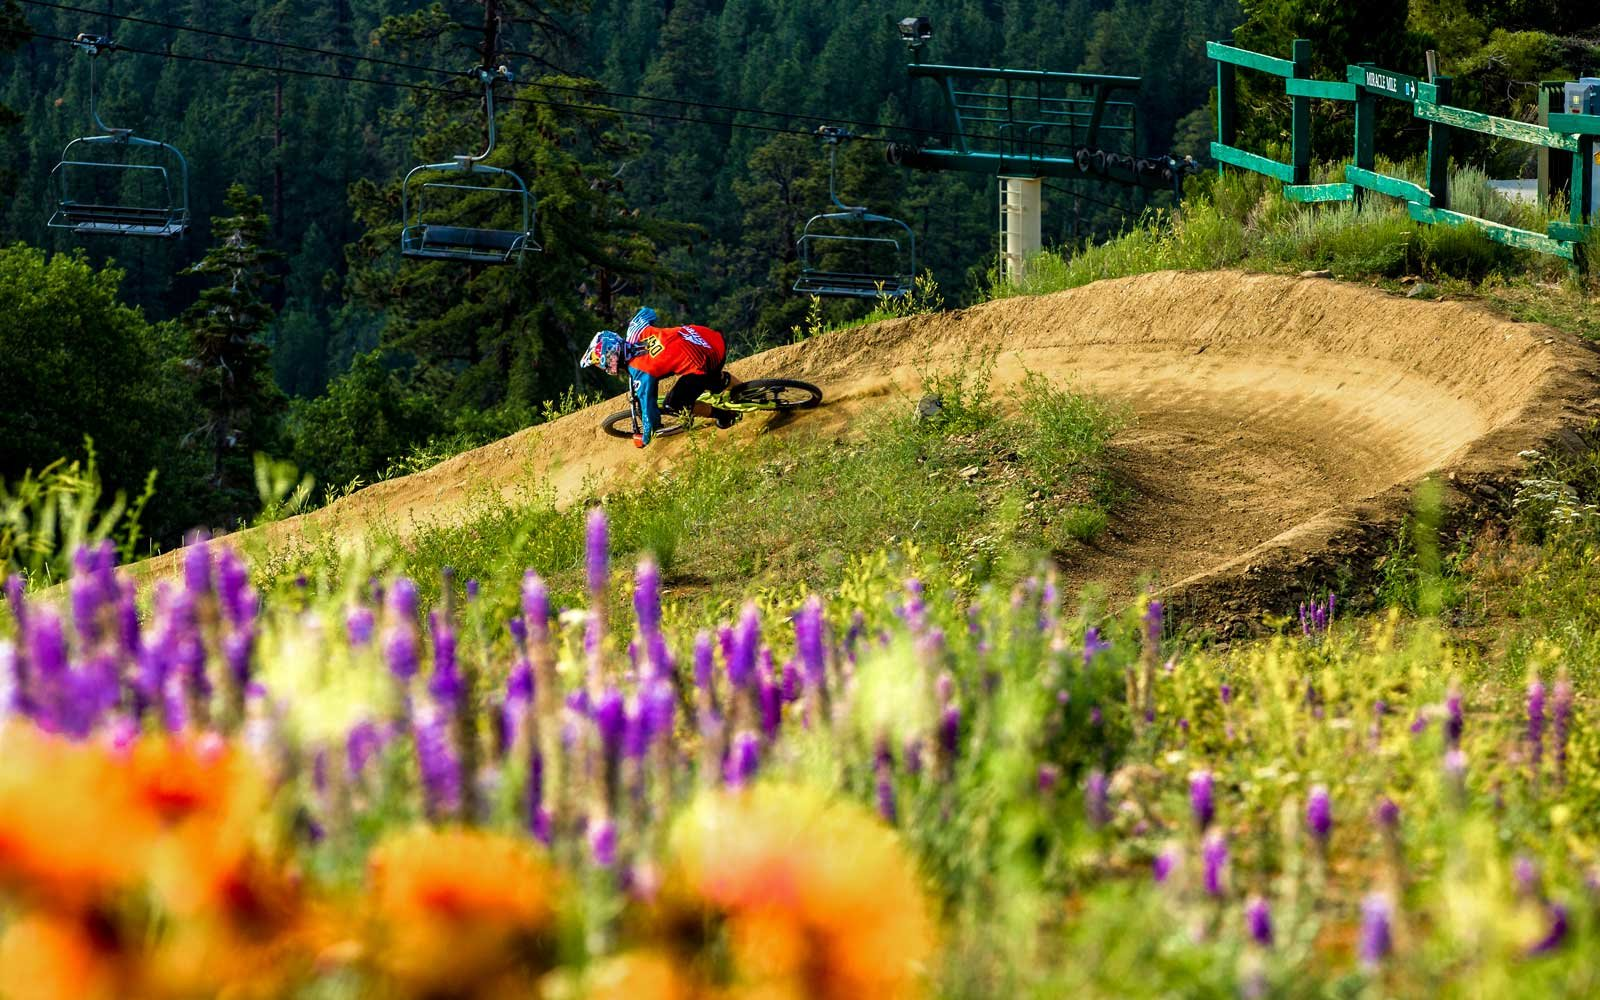 Things to do in Big Bear in the spring and summer